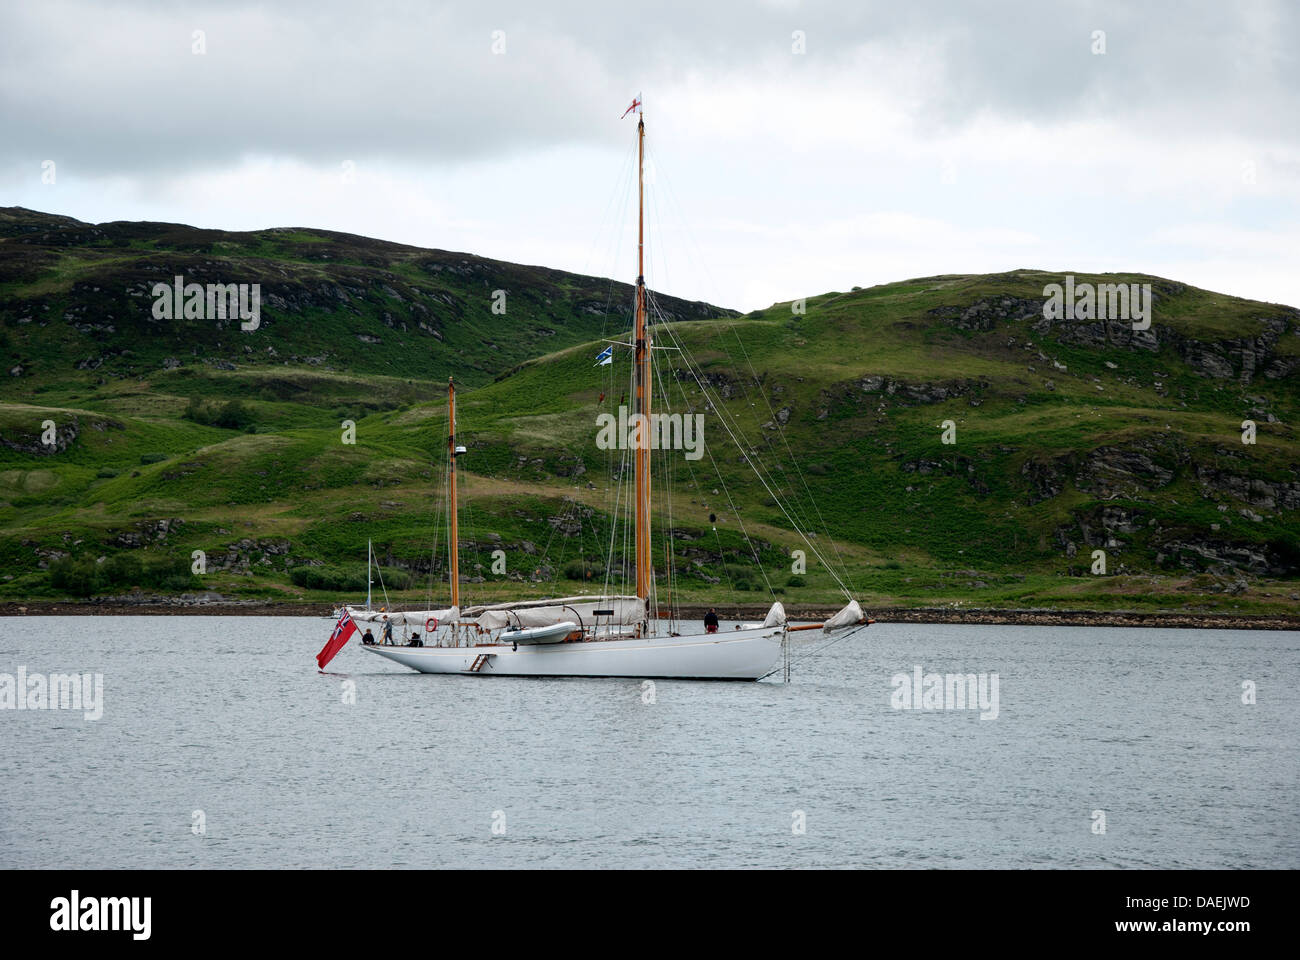 William Fife Built Gaff Ketch 'Kentra' Moored in Tighnabruaich Bay West Coast of Highlands of Scotland Fife - Stock Image